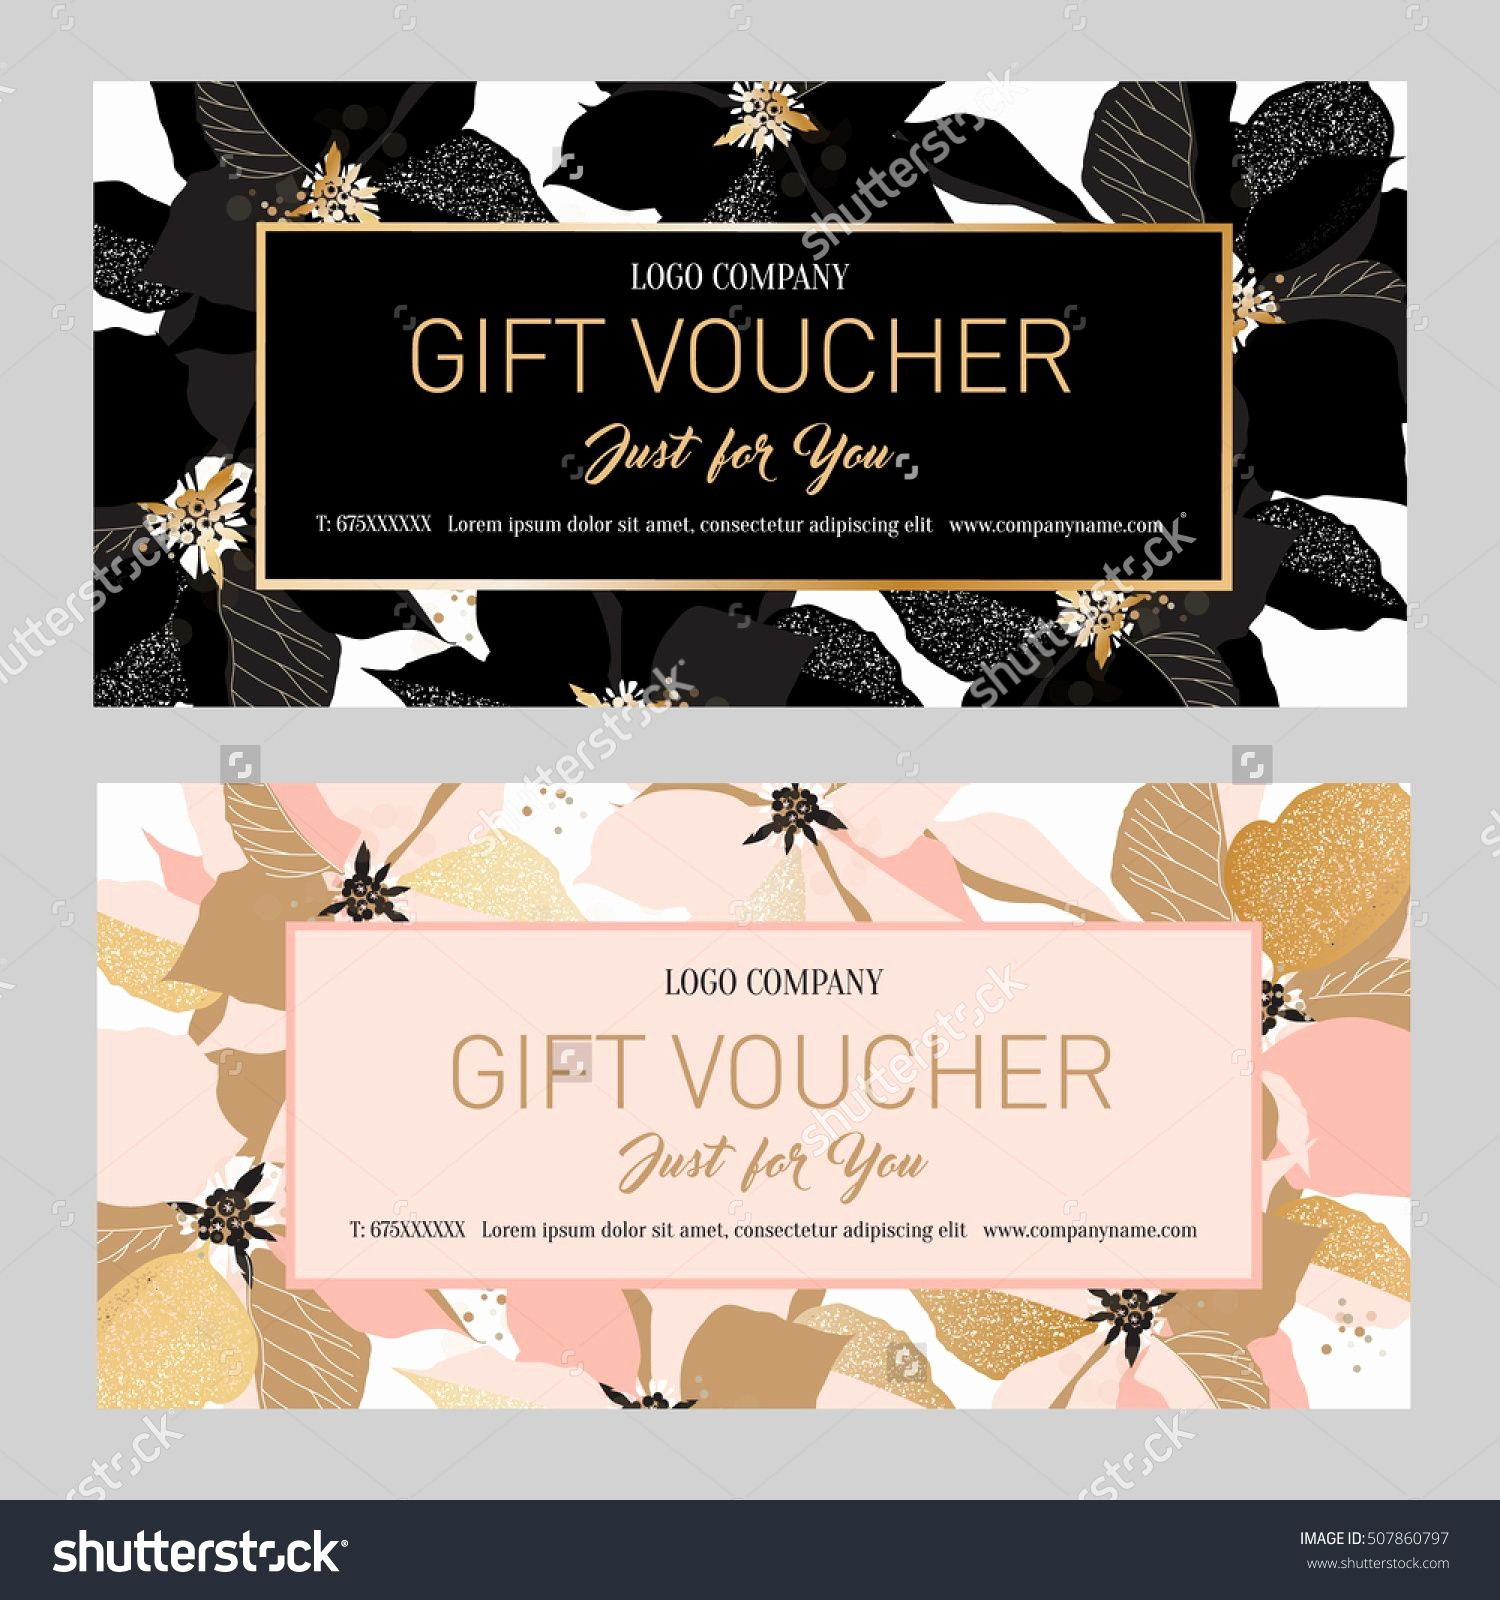 Cooking Class Gift Certificate Template Unique Gift Premium Certificate Gift Card Gift Voucher Coupon